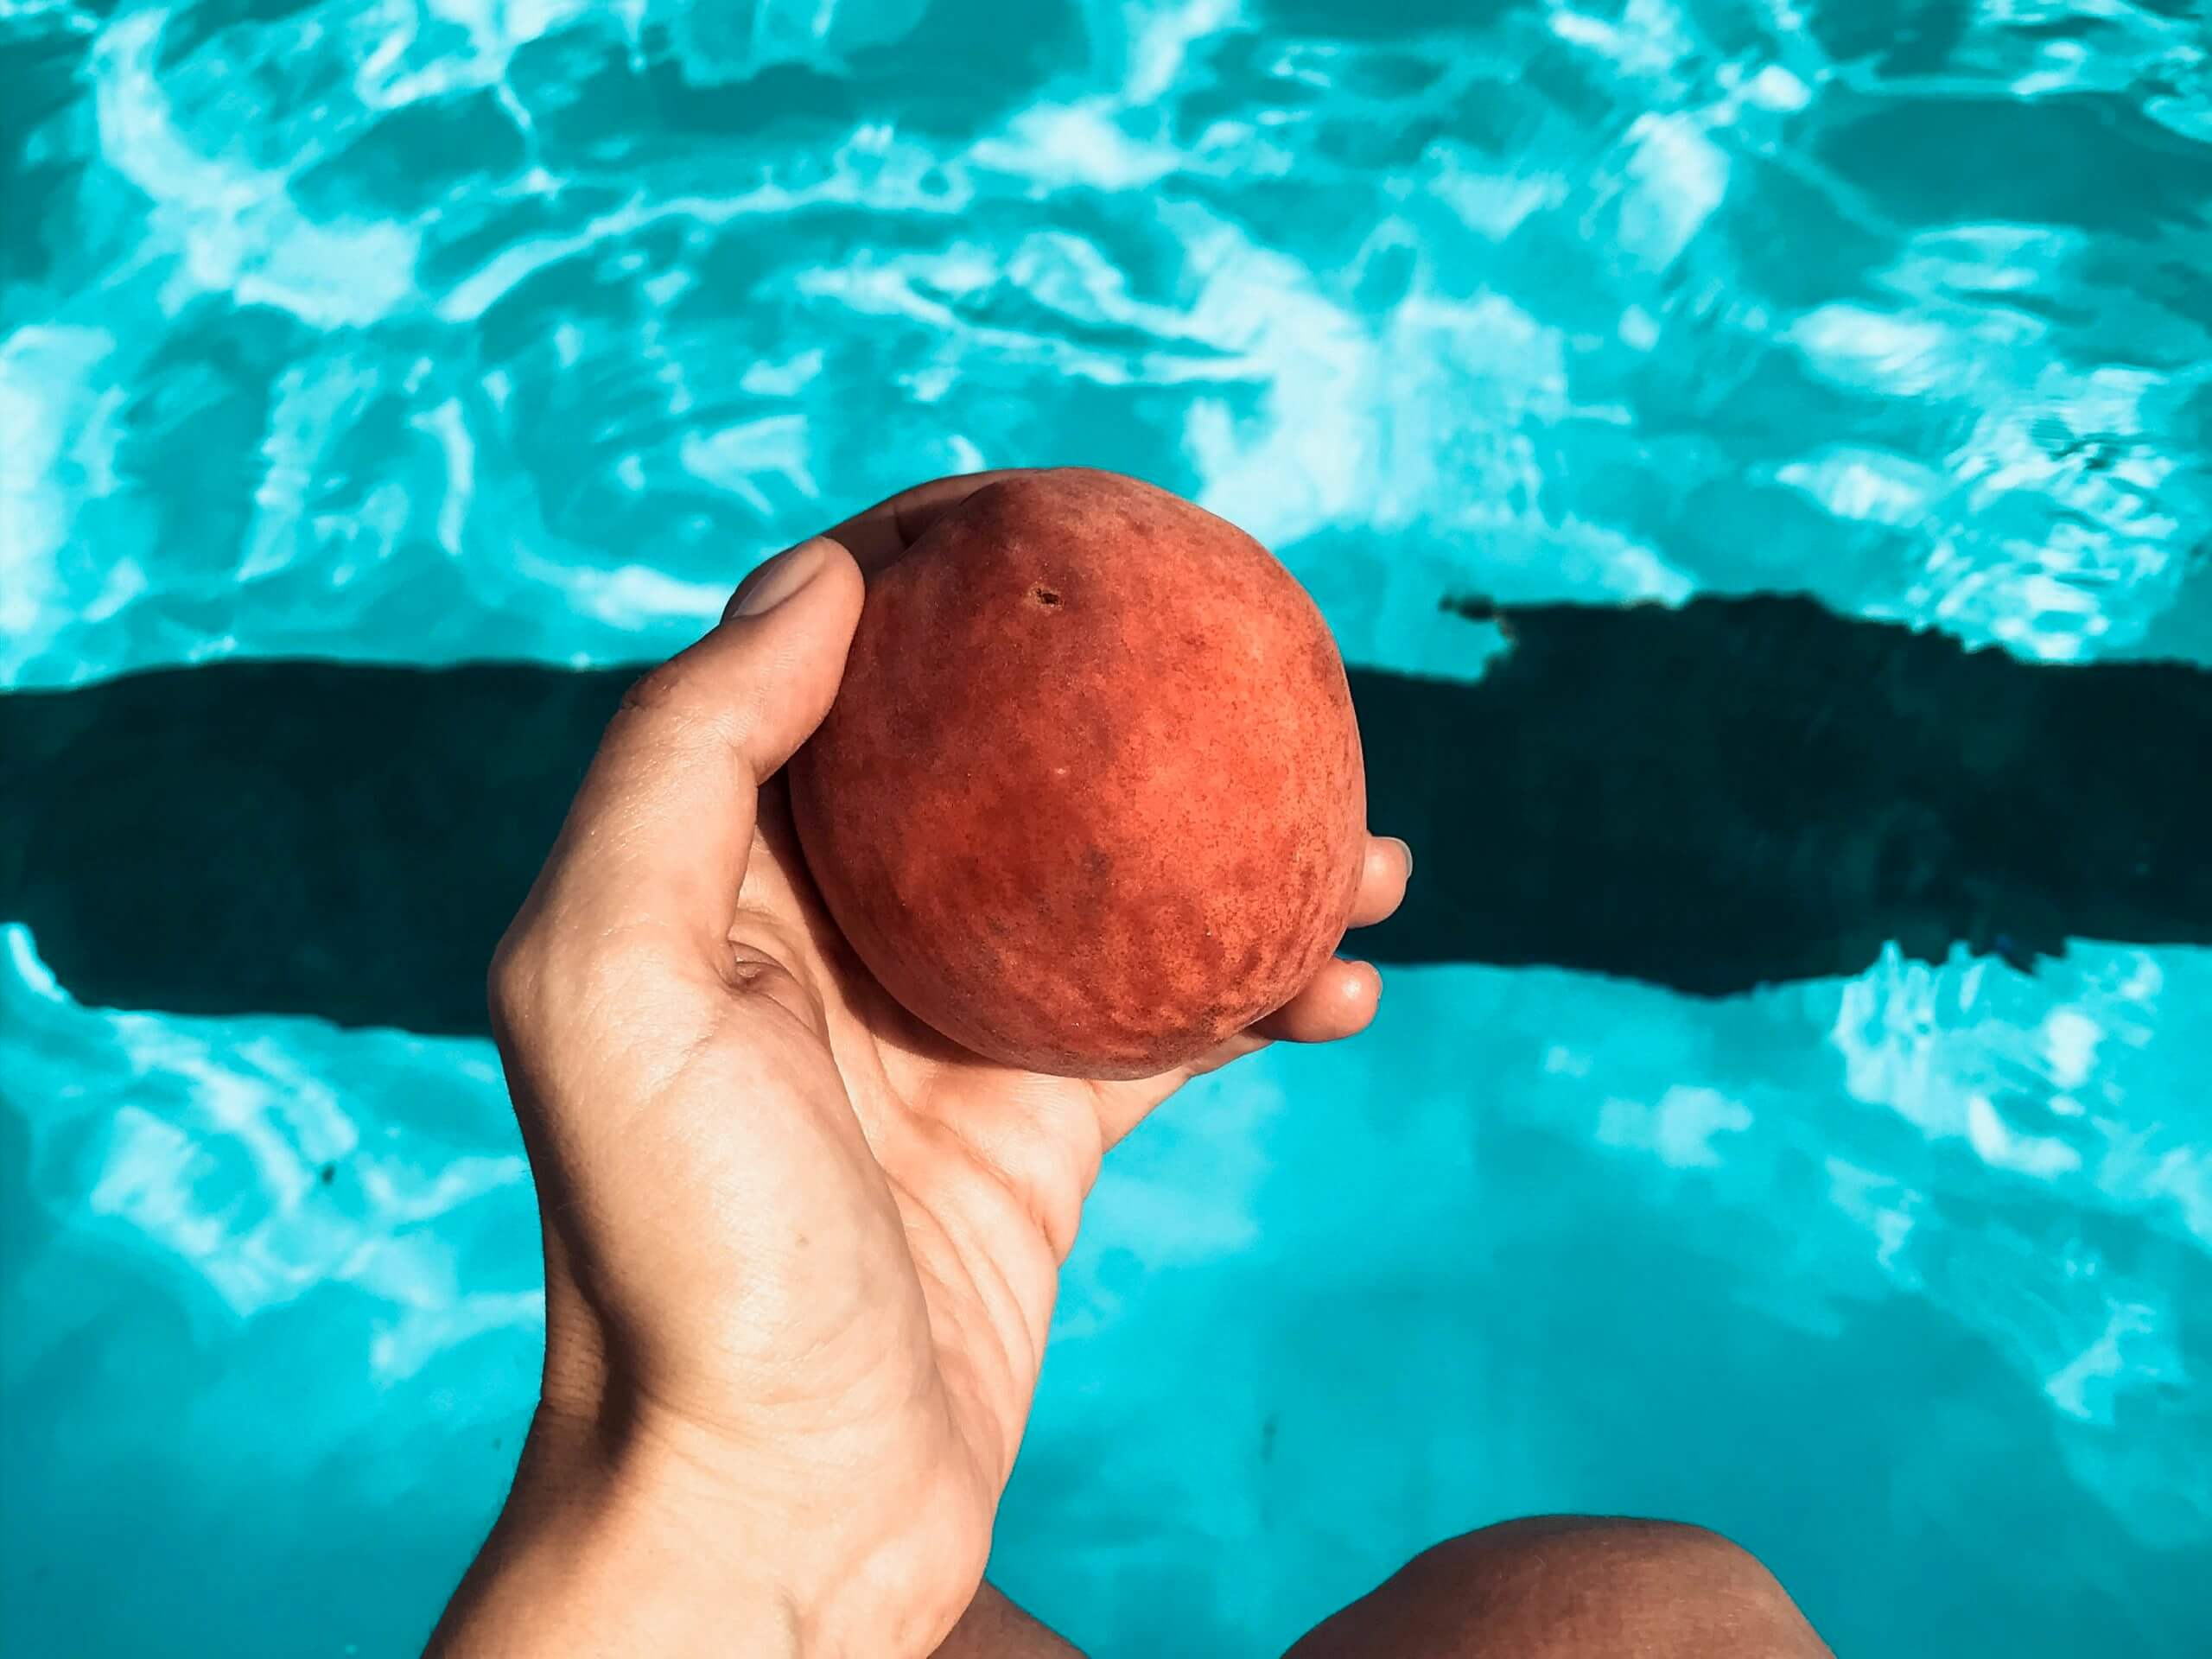 Sustainable and Vegan Lifestyle influencer shares all about peaches and an amazing summer recipe!!